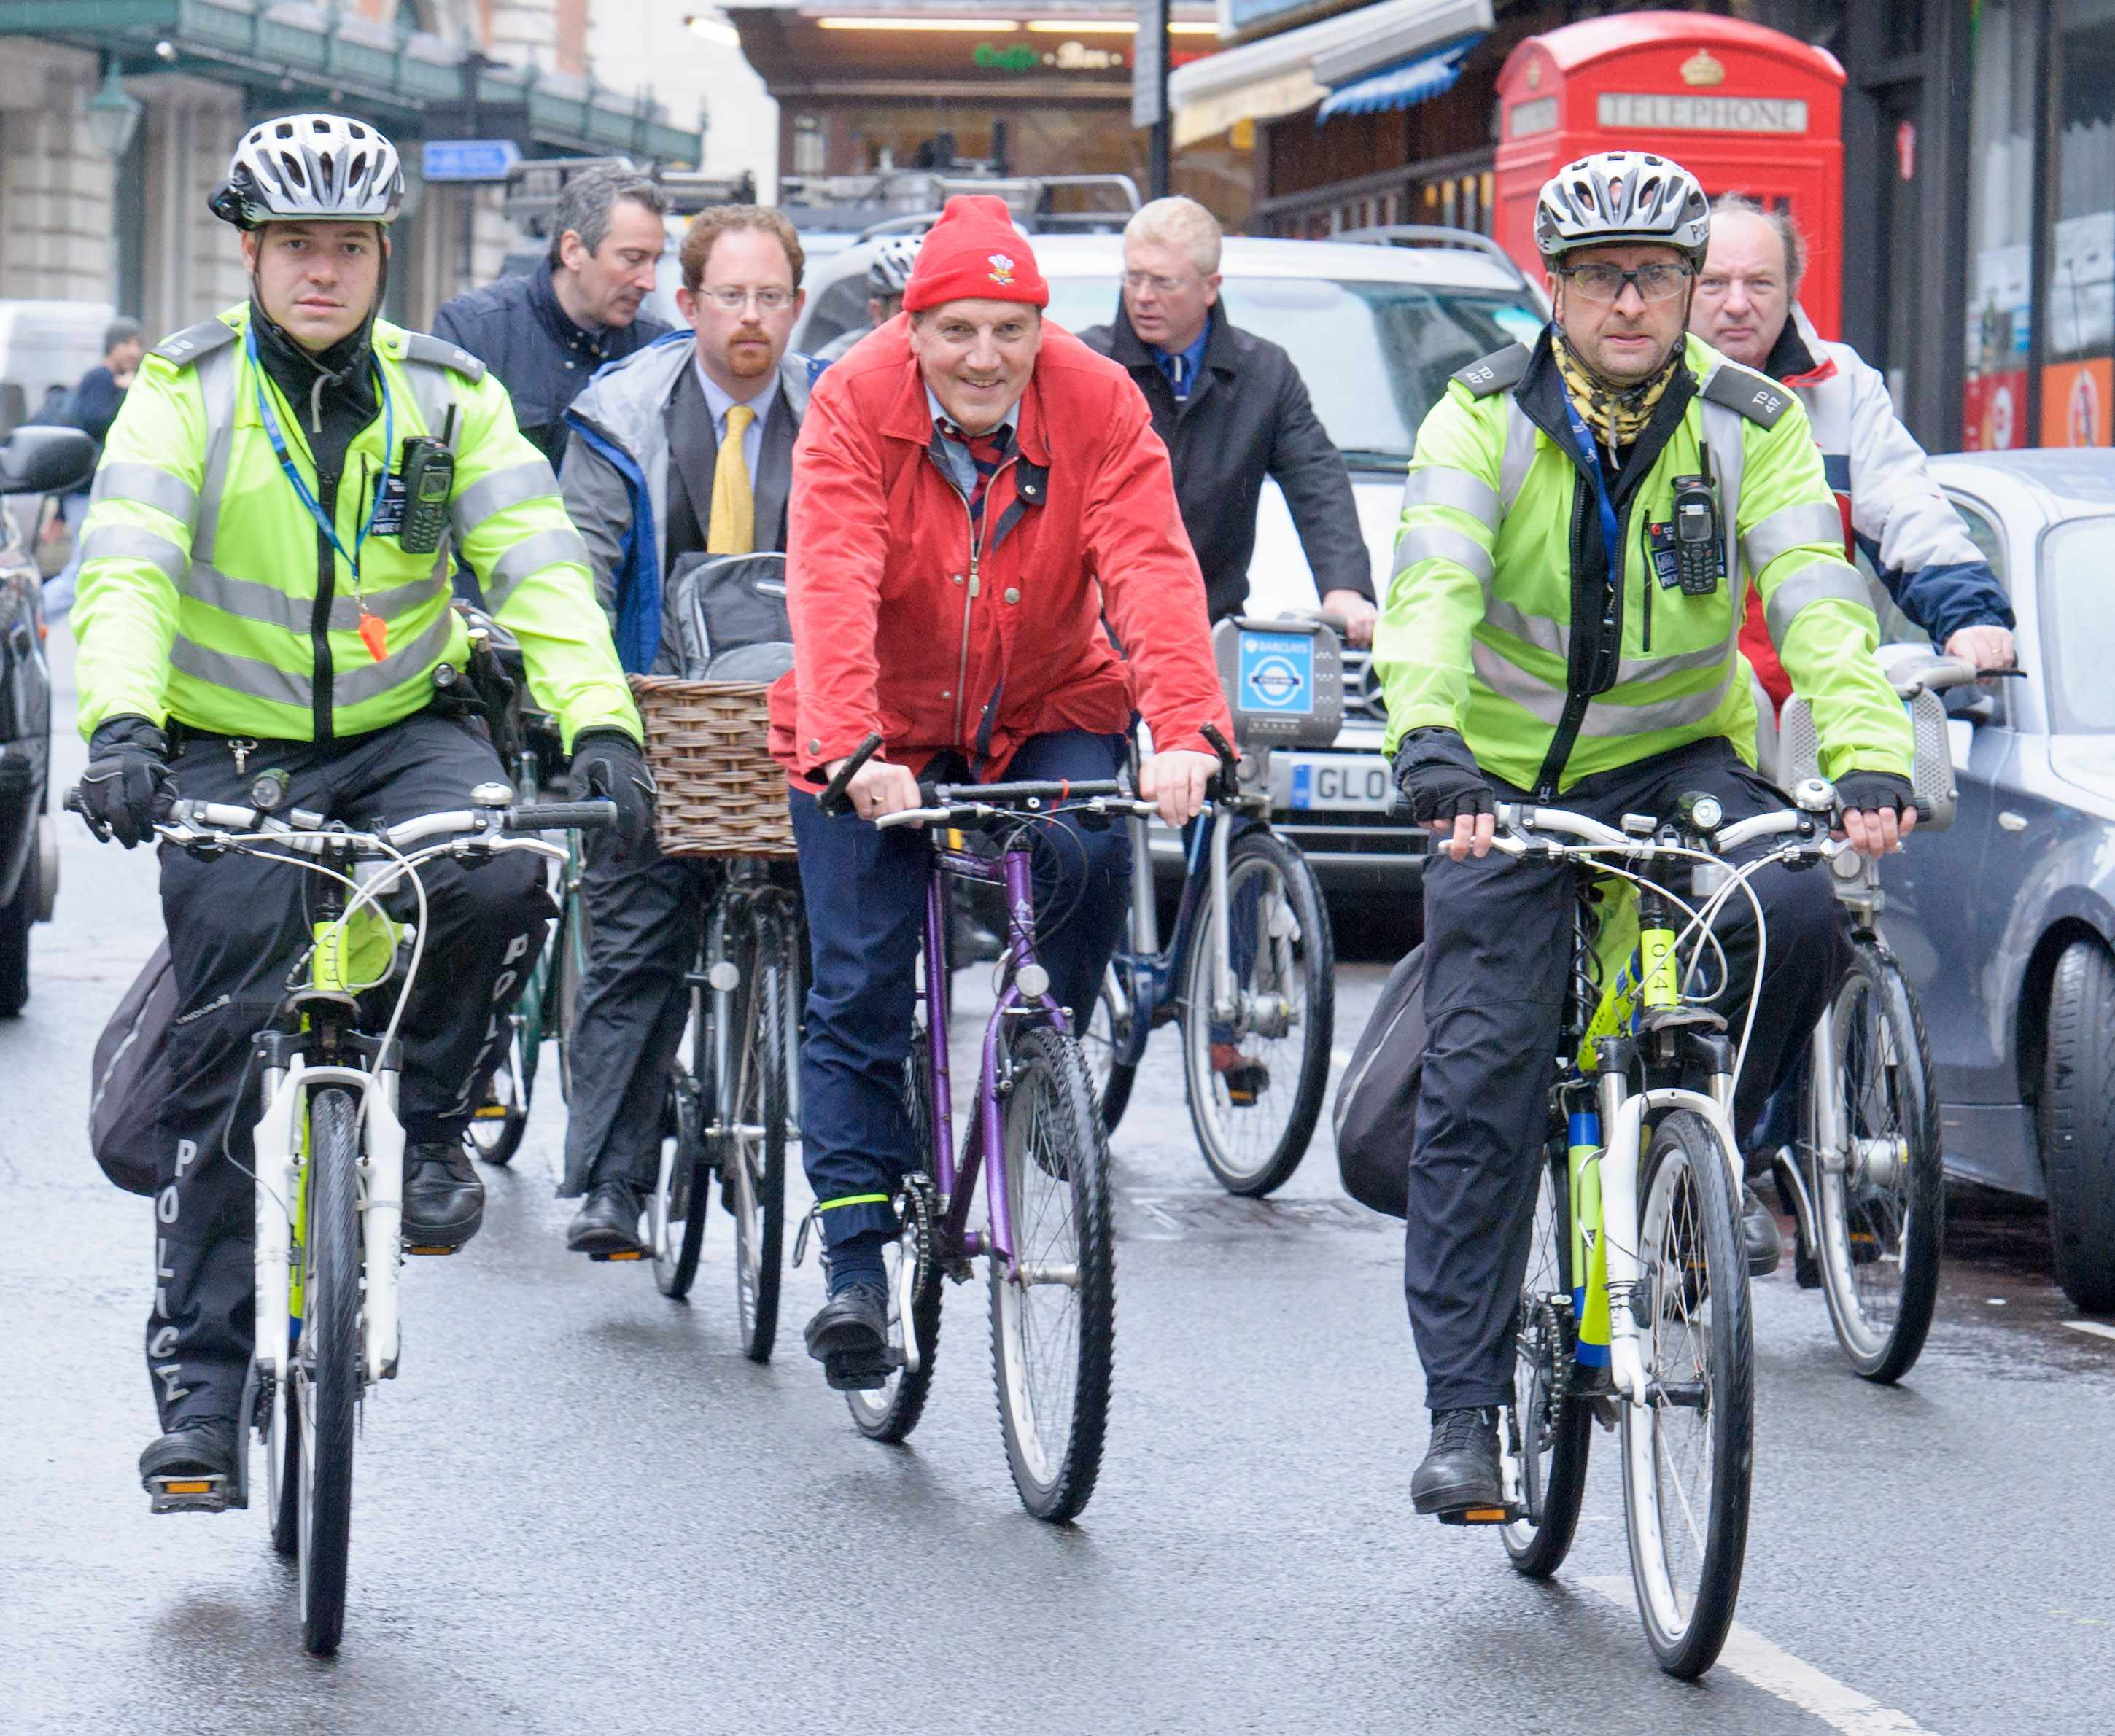 Julian Huppert (far right) is co-chair of the All Party Parliamentary Cycling Group, responsible for the wide-ranging investigation into UK cycling